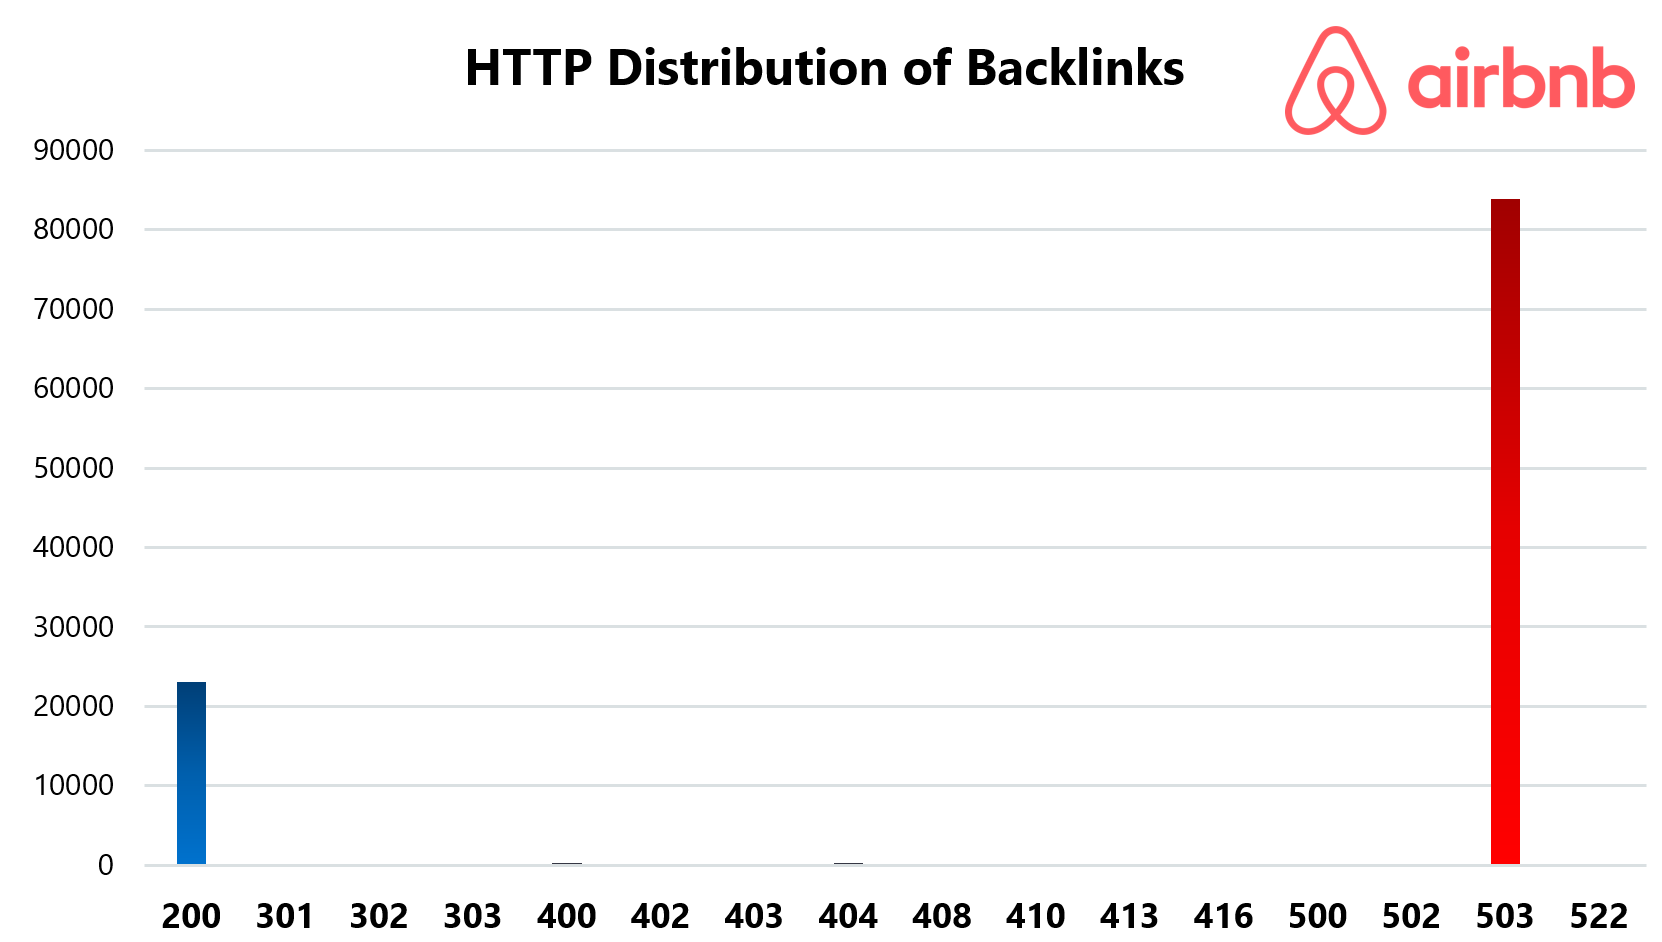 Airbnb HTTP Distribution